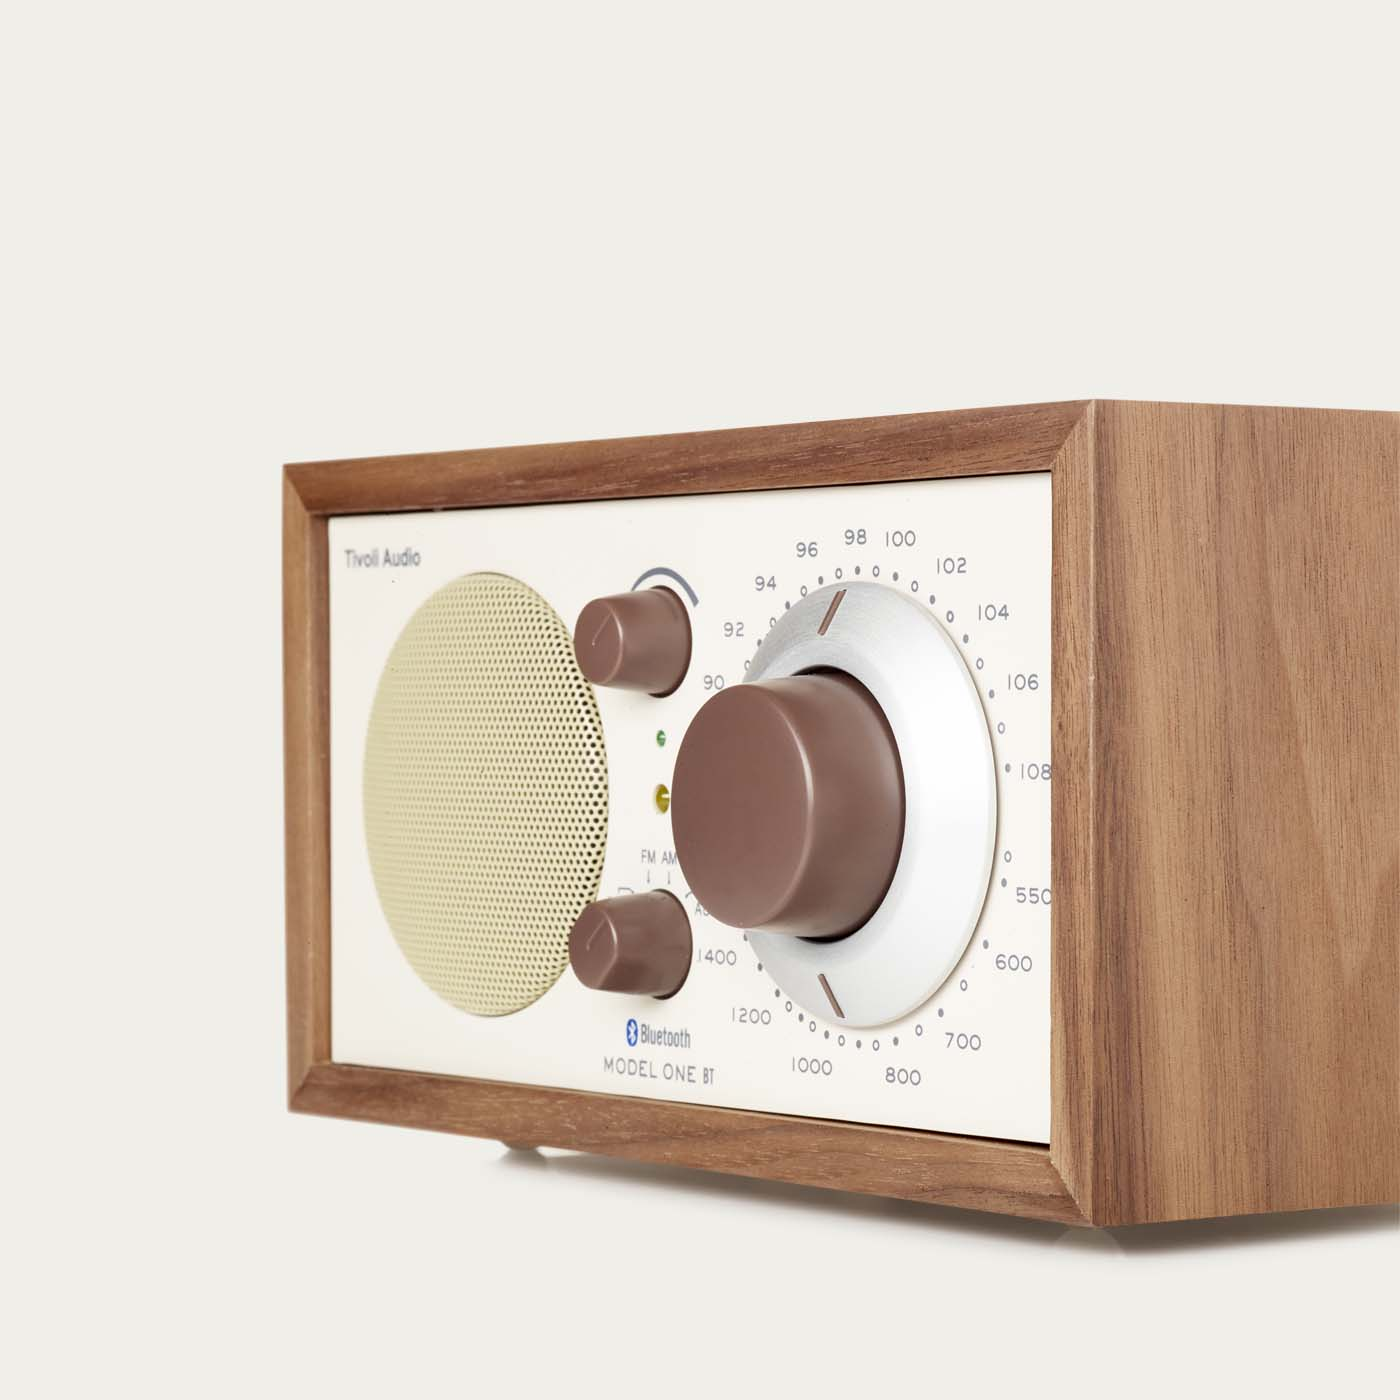 Walnut / Beige Model One BT Tivoli Audio  | Bombinate